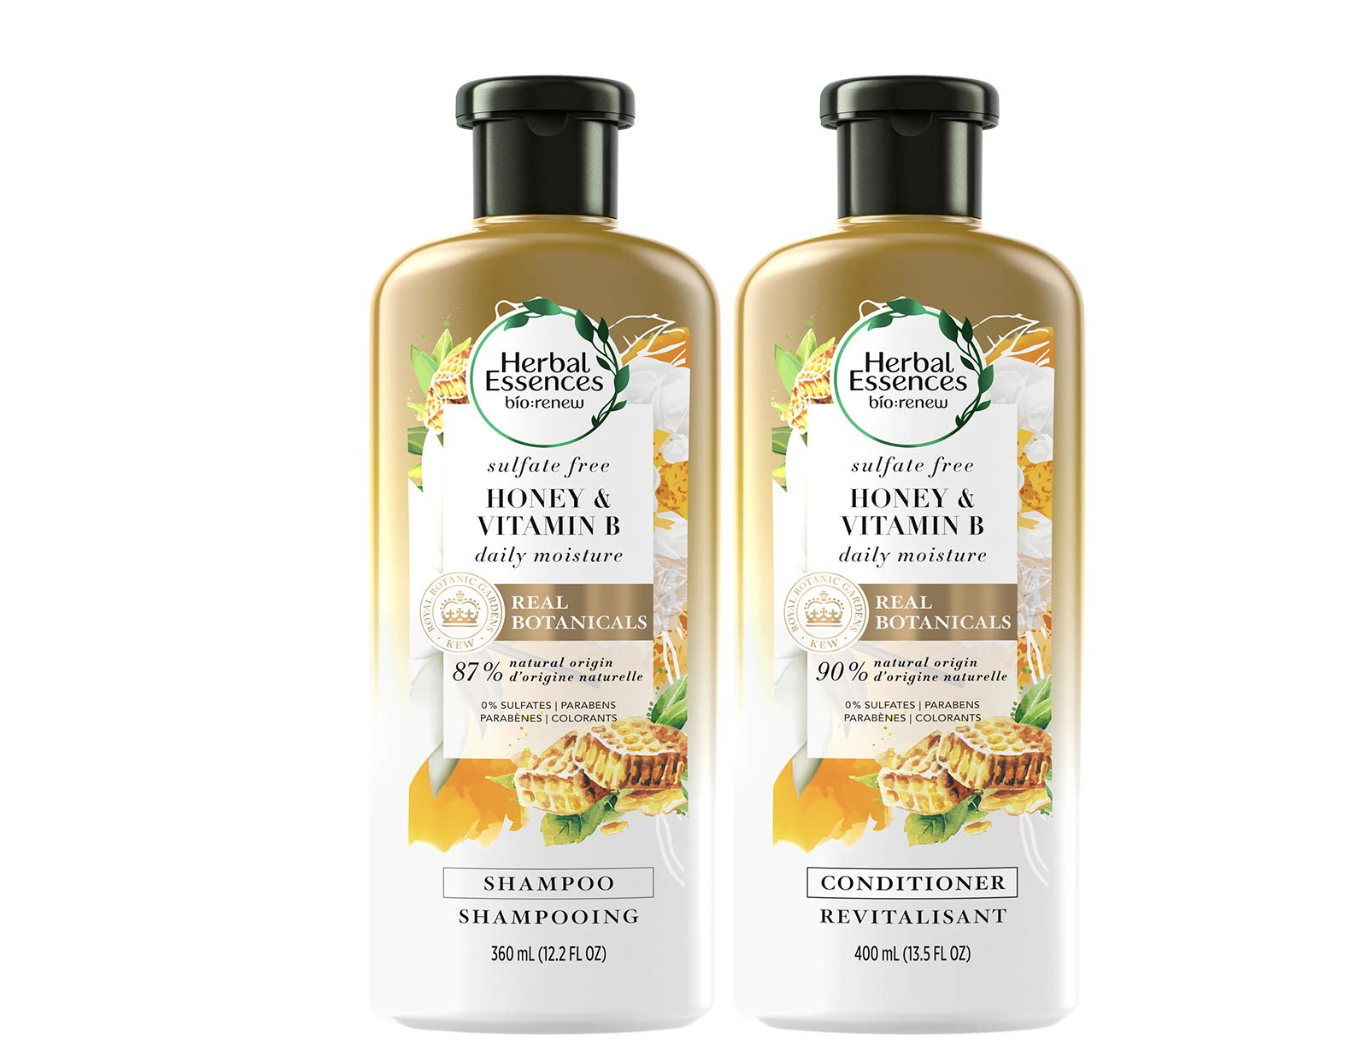 herbal essences sulfate free honey shampoo and conditioner